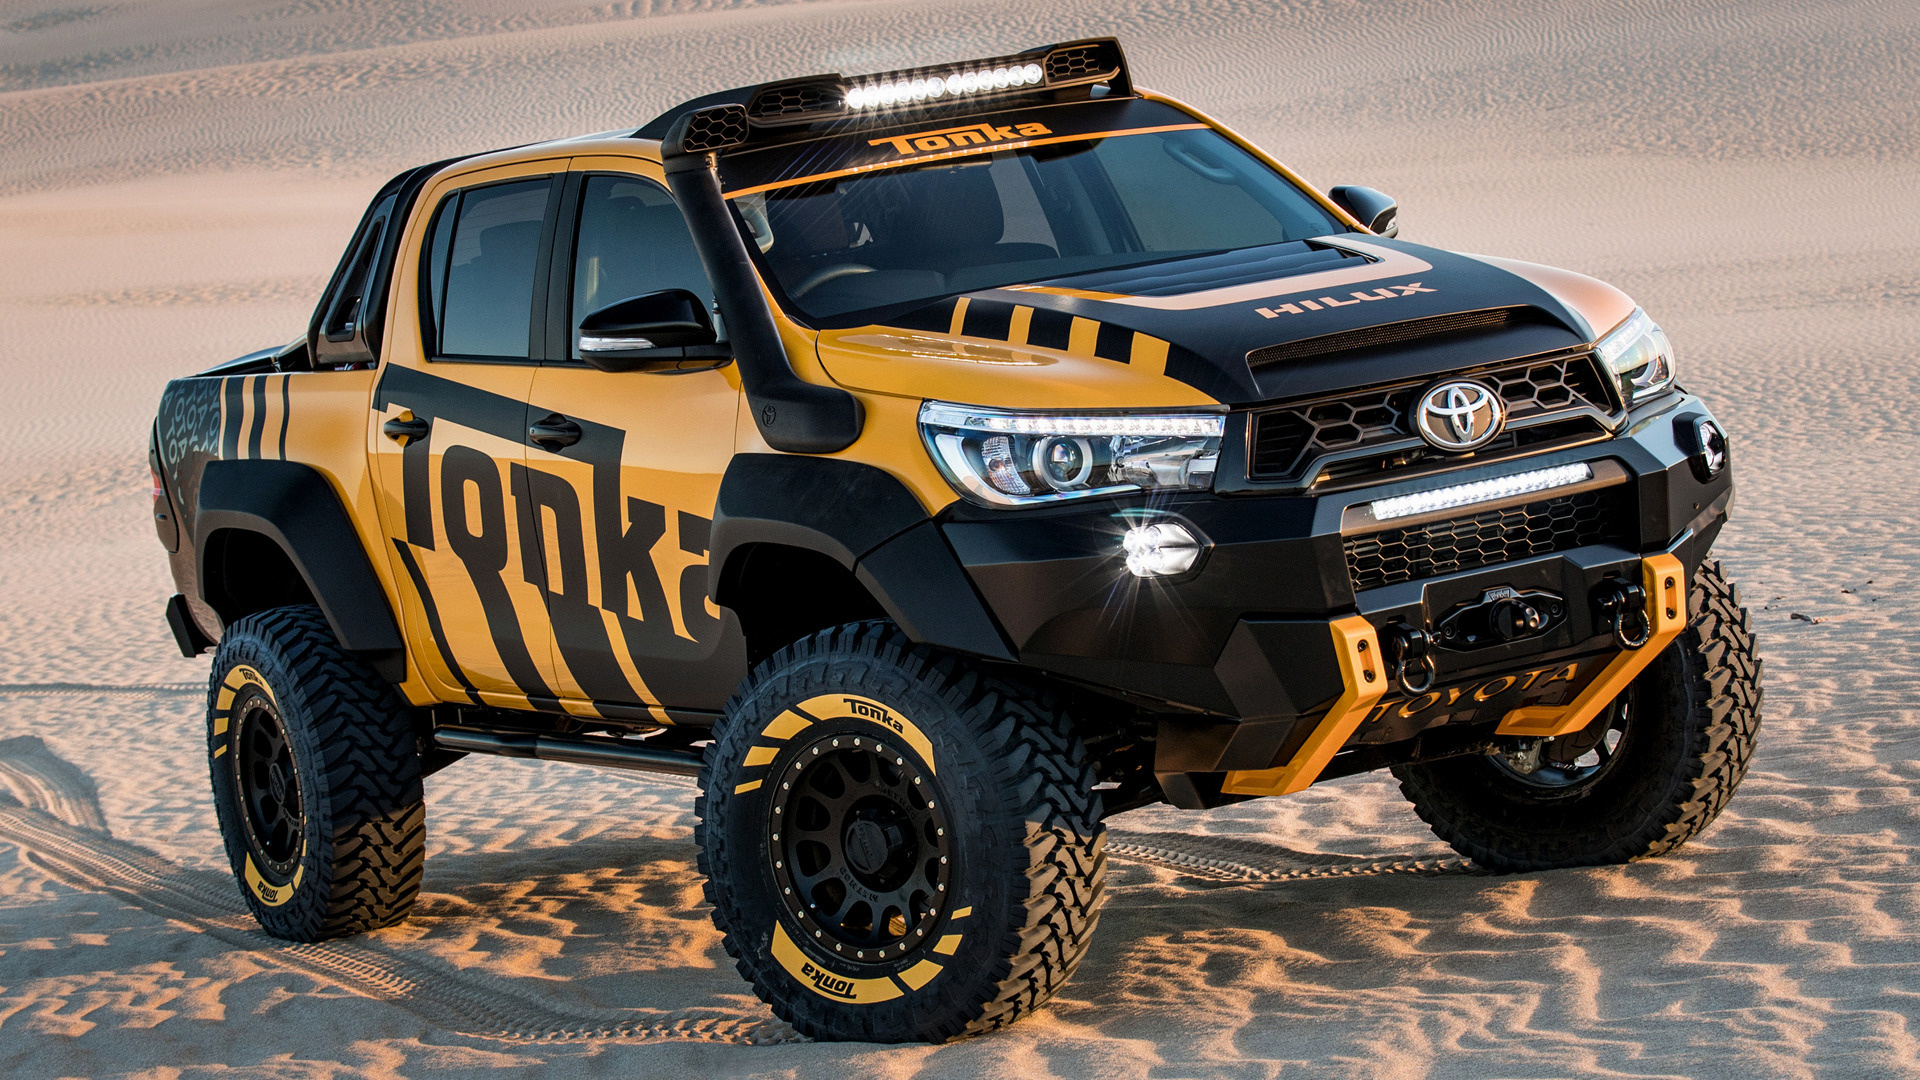 2017 Toyota Hilux Tonka Concept - Wallpapers and HD Images ...